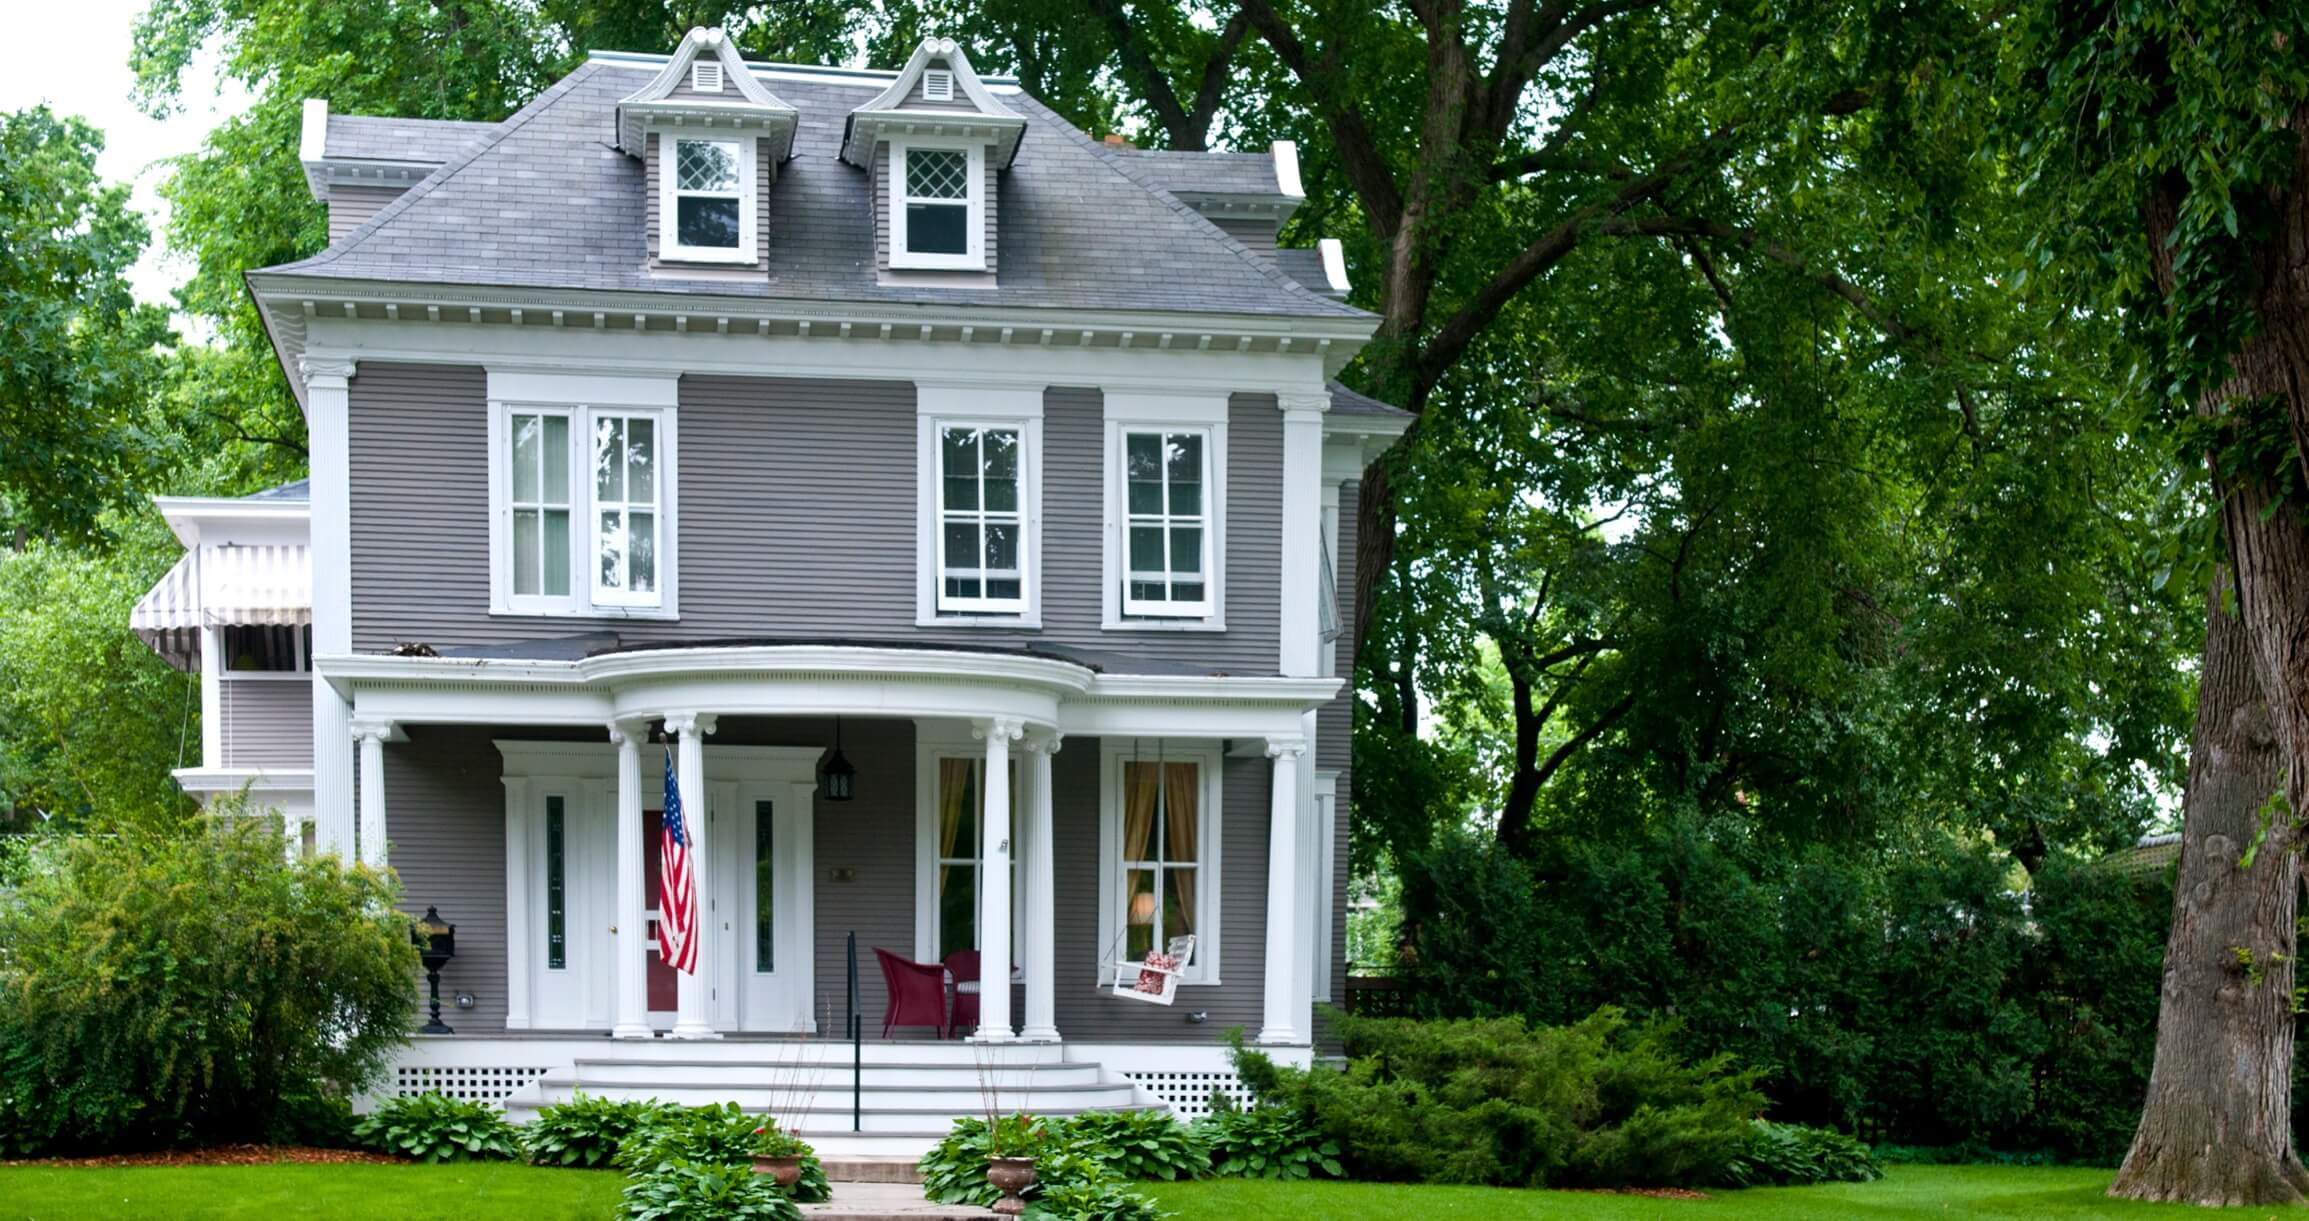 5 Tips For Remodeling An Older Home